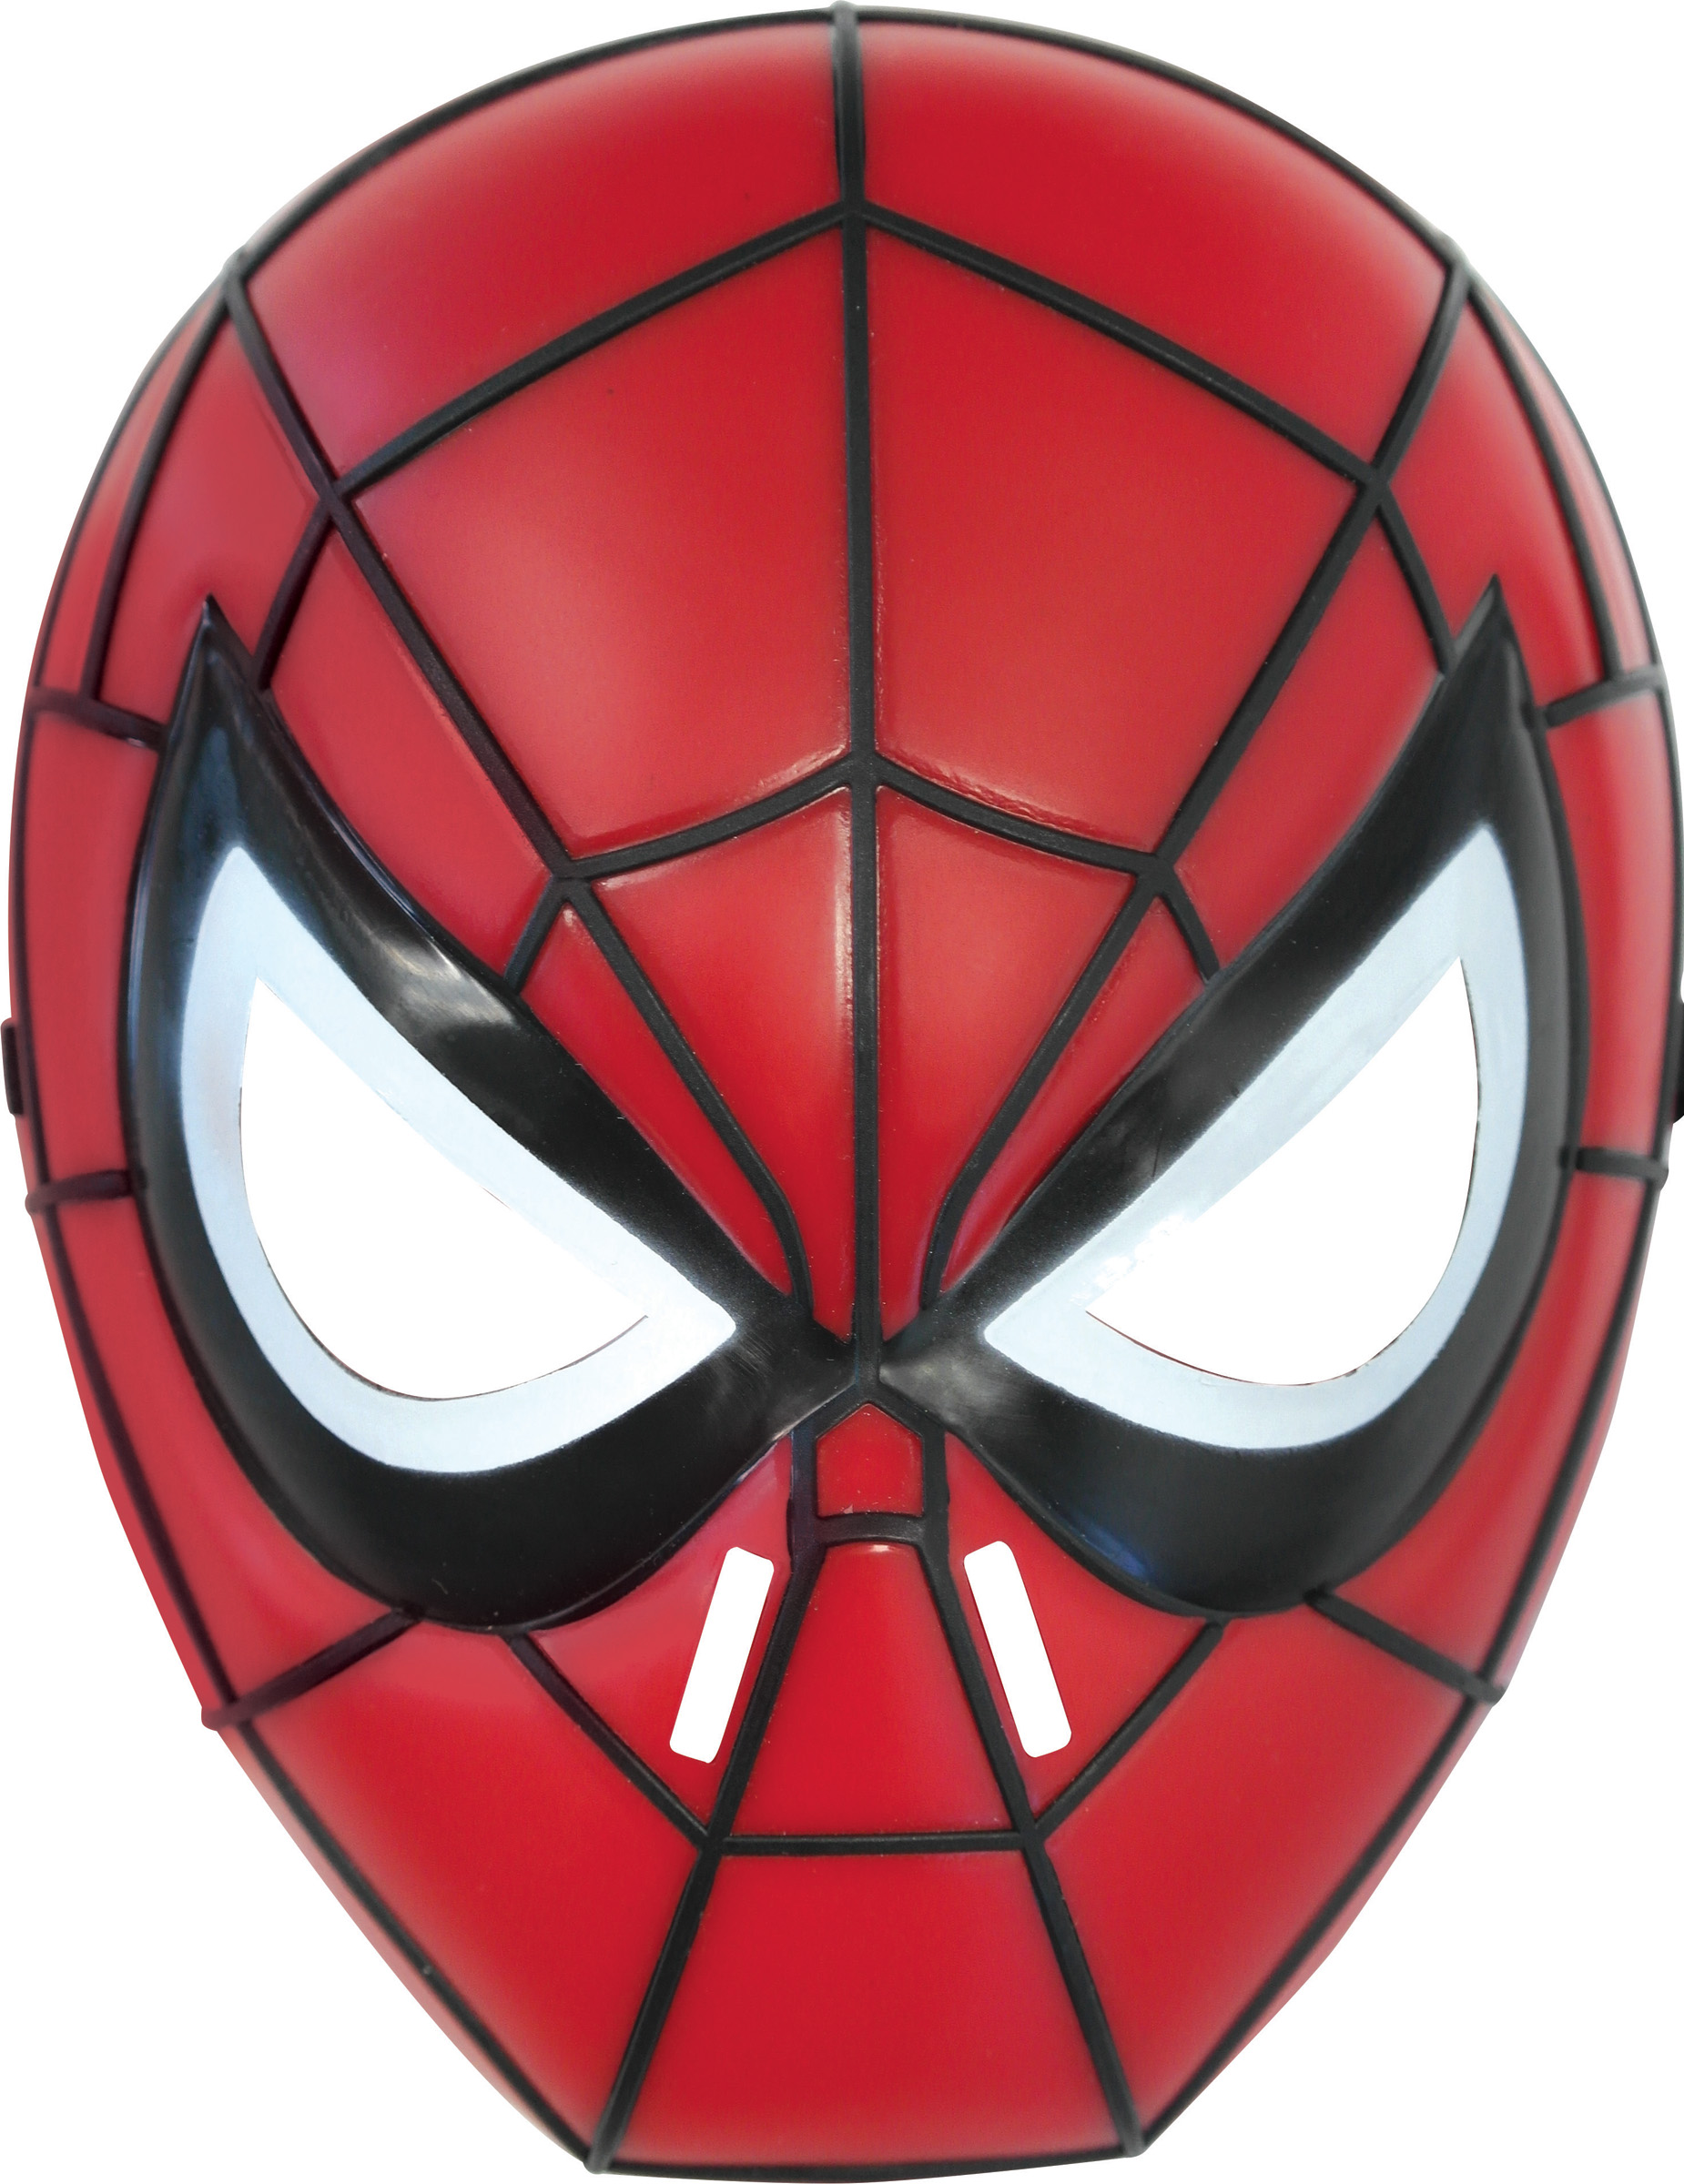 spider man ultimate maske f r kinder masken und g nstige faschingskost me vegaoo. Black Bedroom Furniture Sets. Home Design Ideas